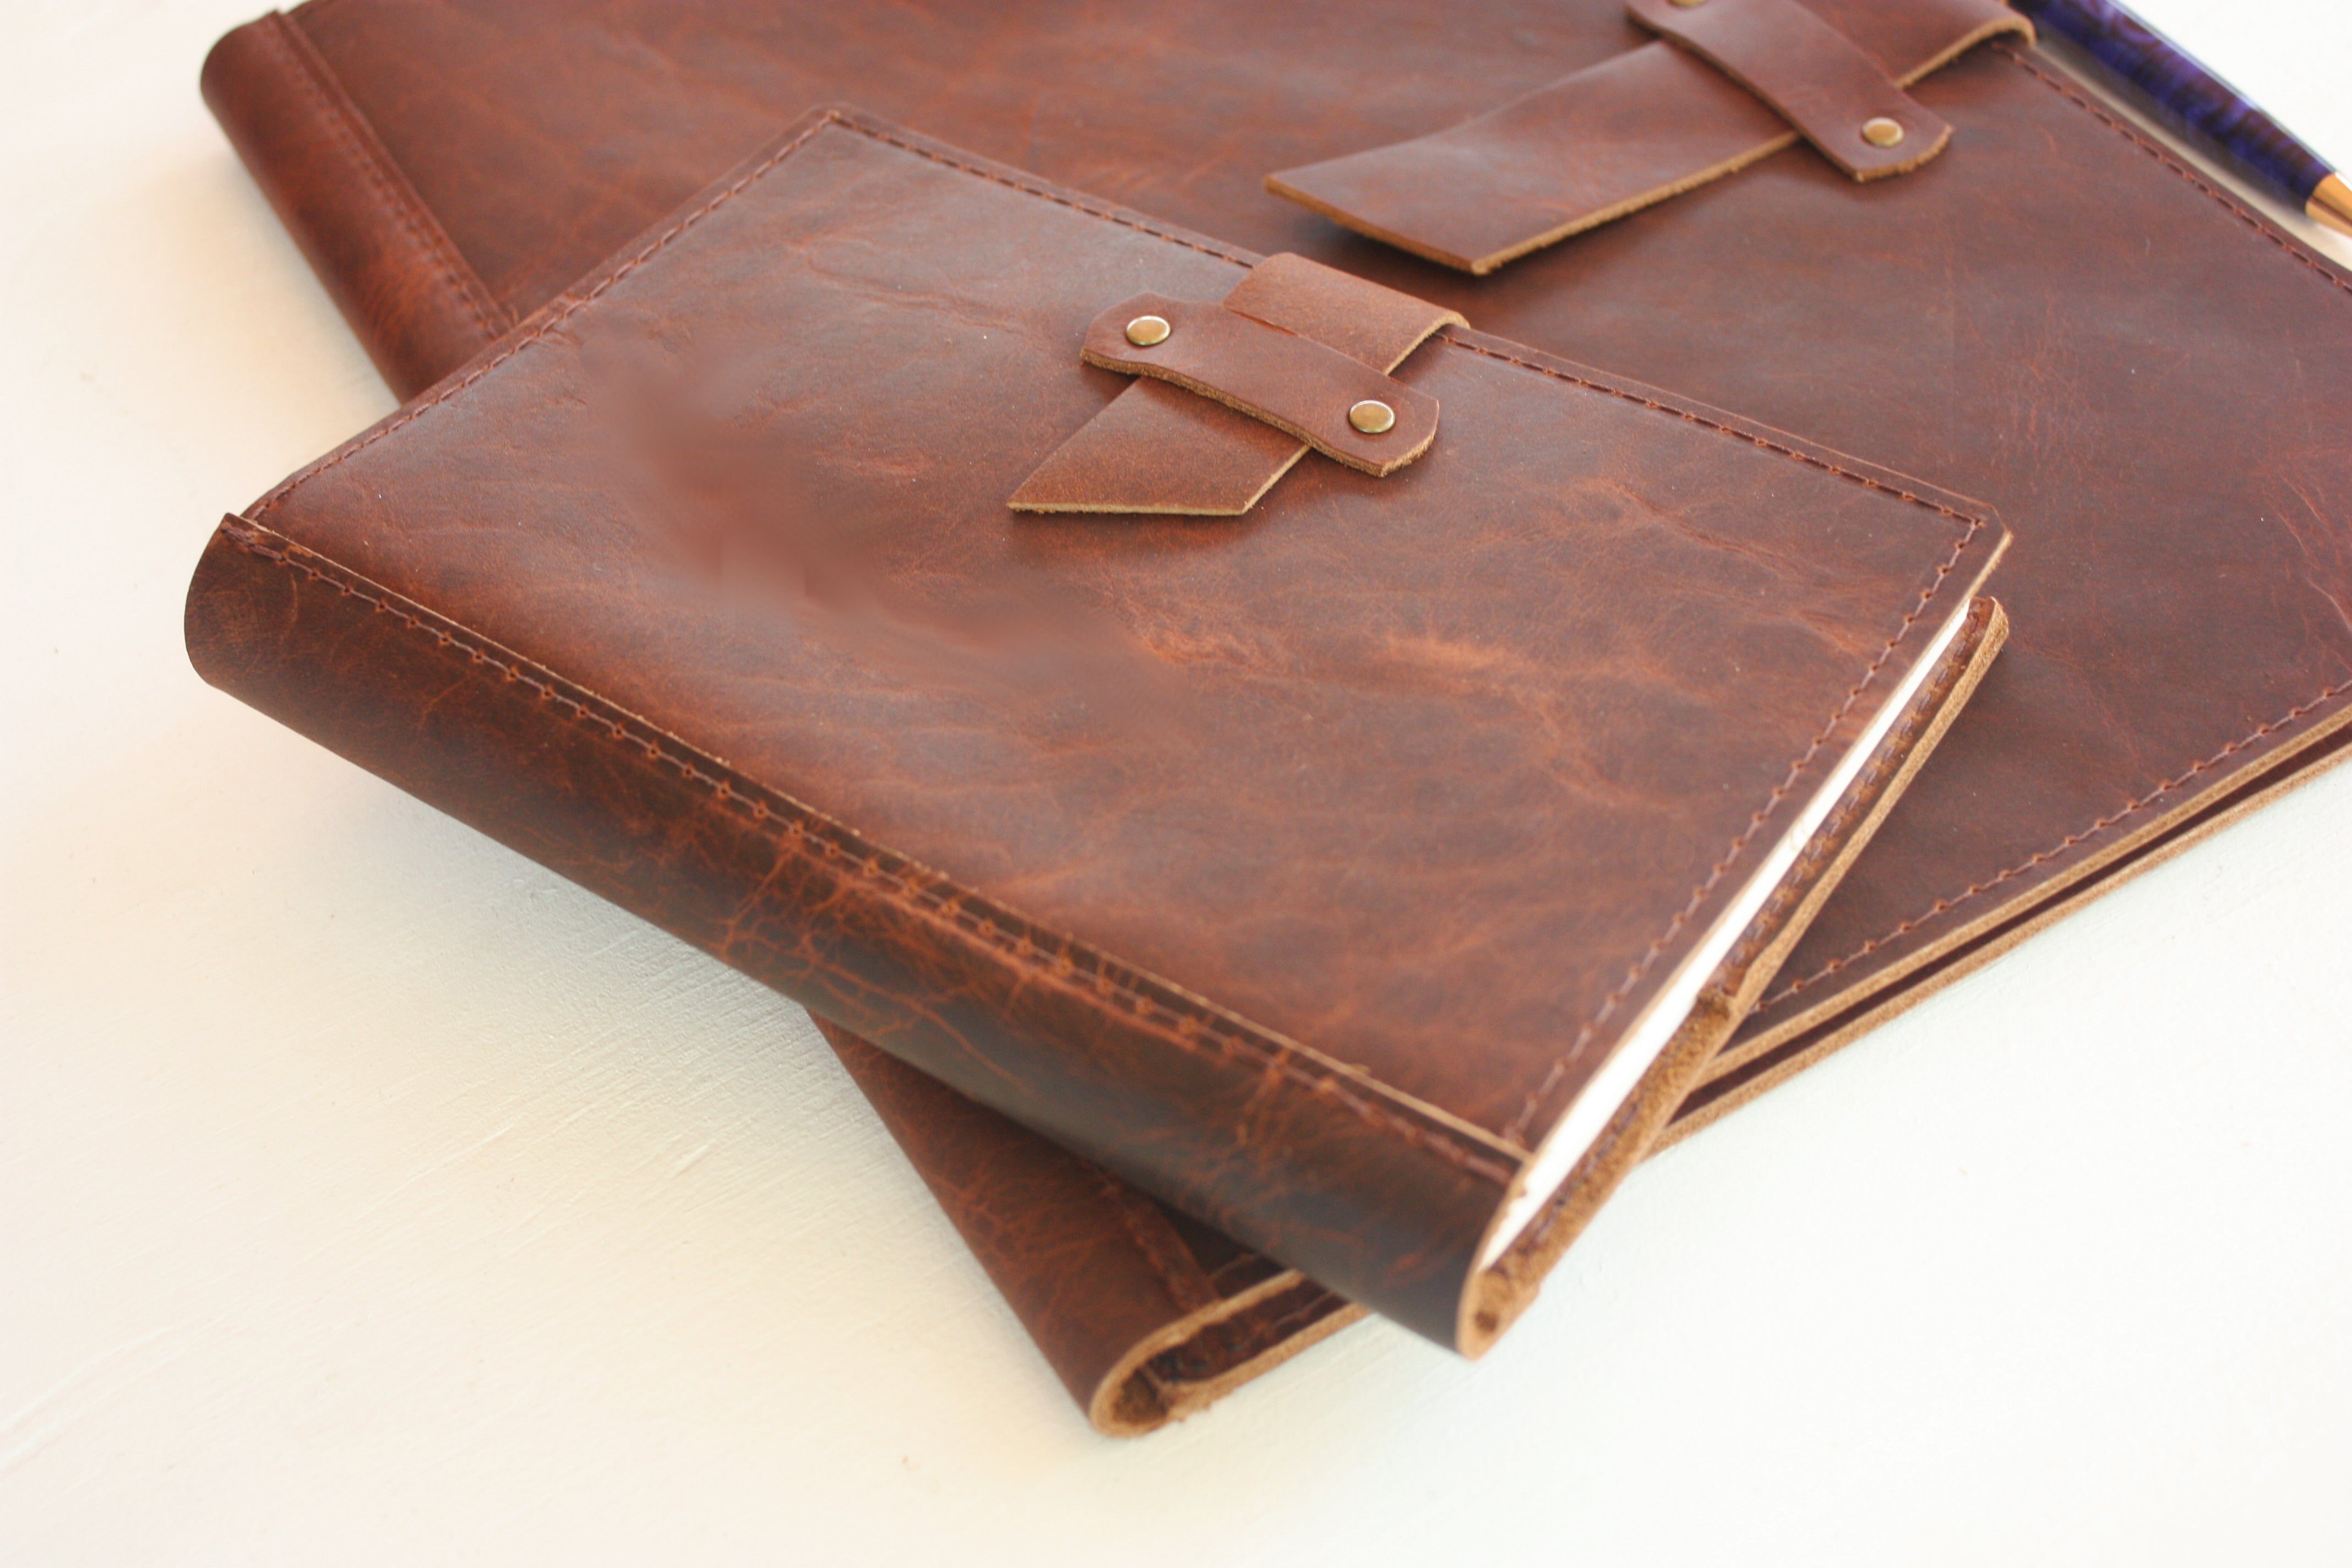 Dispatch Leather Journal and Notepad Covers in Rust